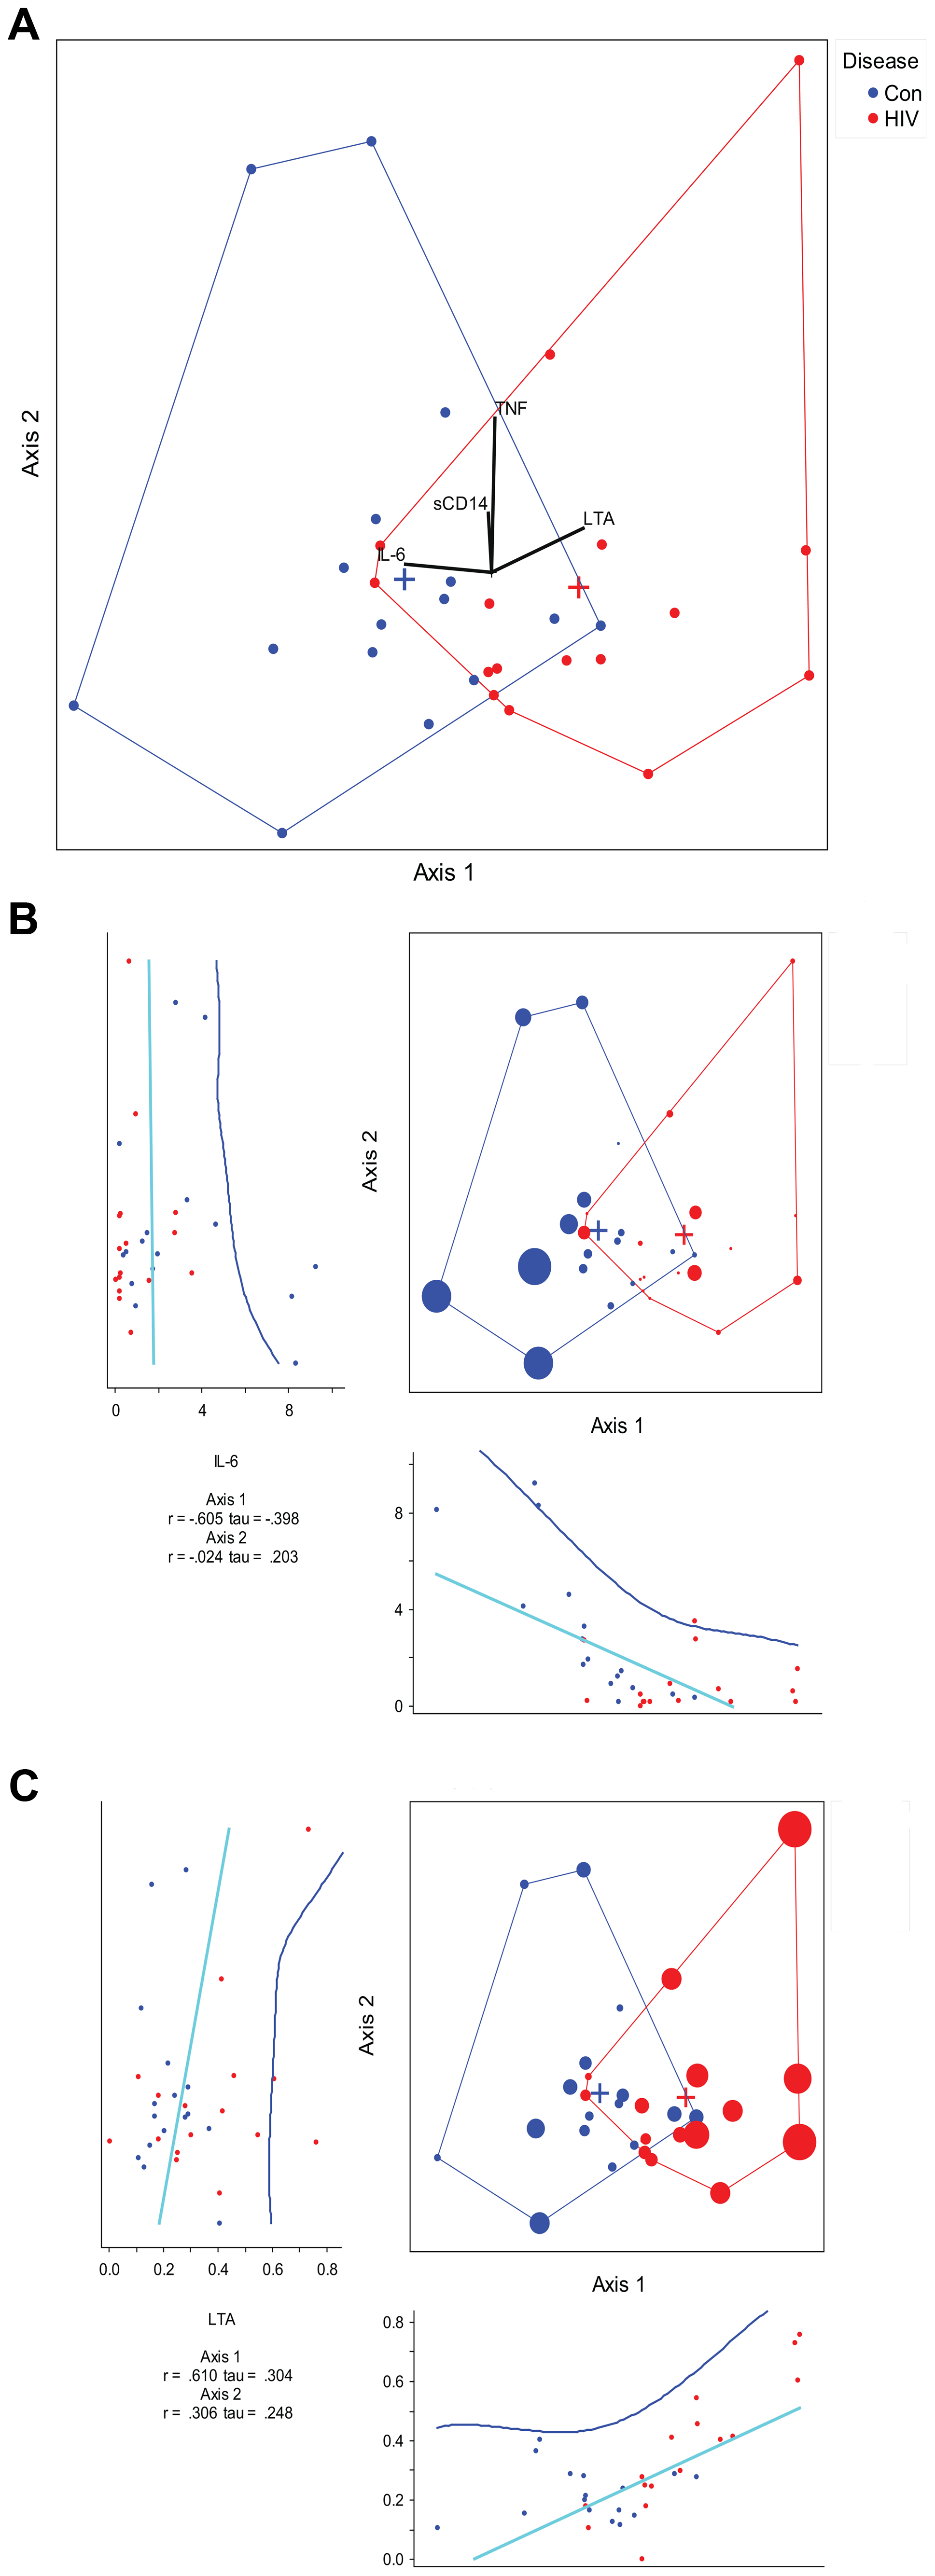 Canonical correspondence analysis of genera with measured cytokines.